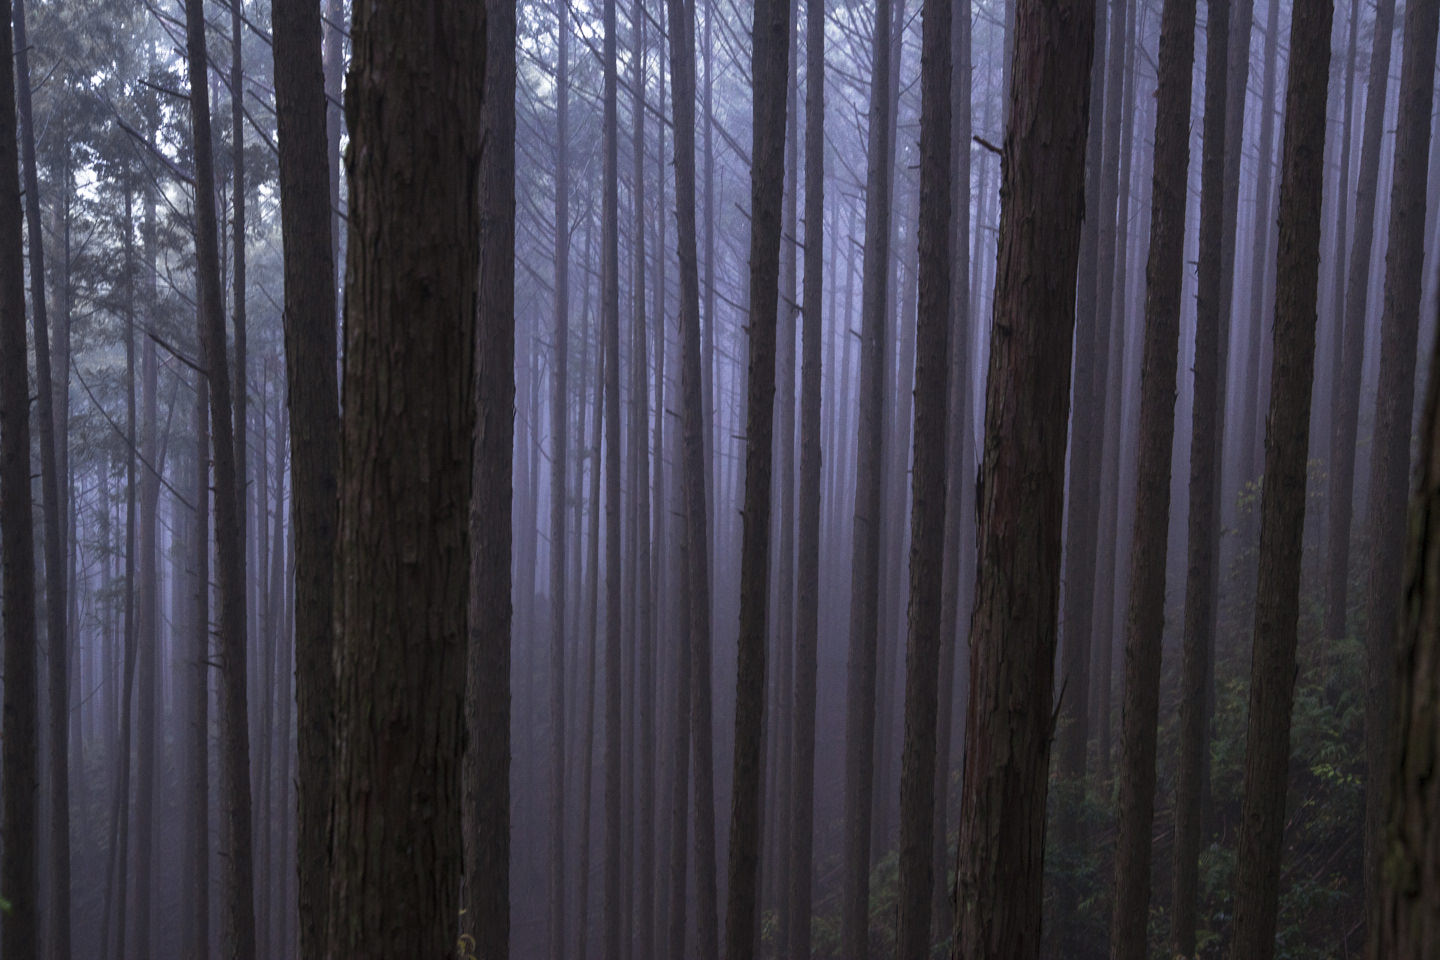 Tall, straight tree trunks in a swathe of thick fog